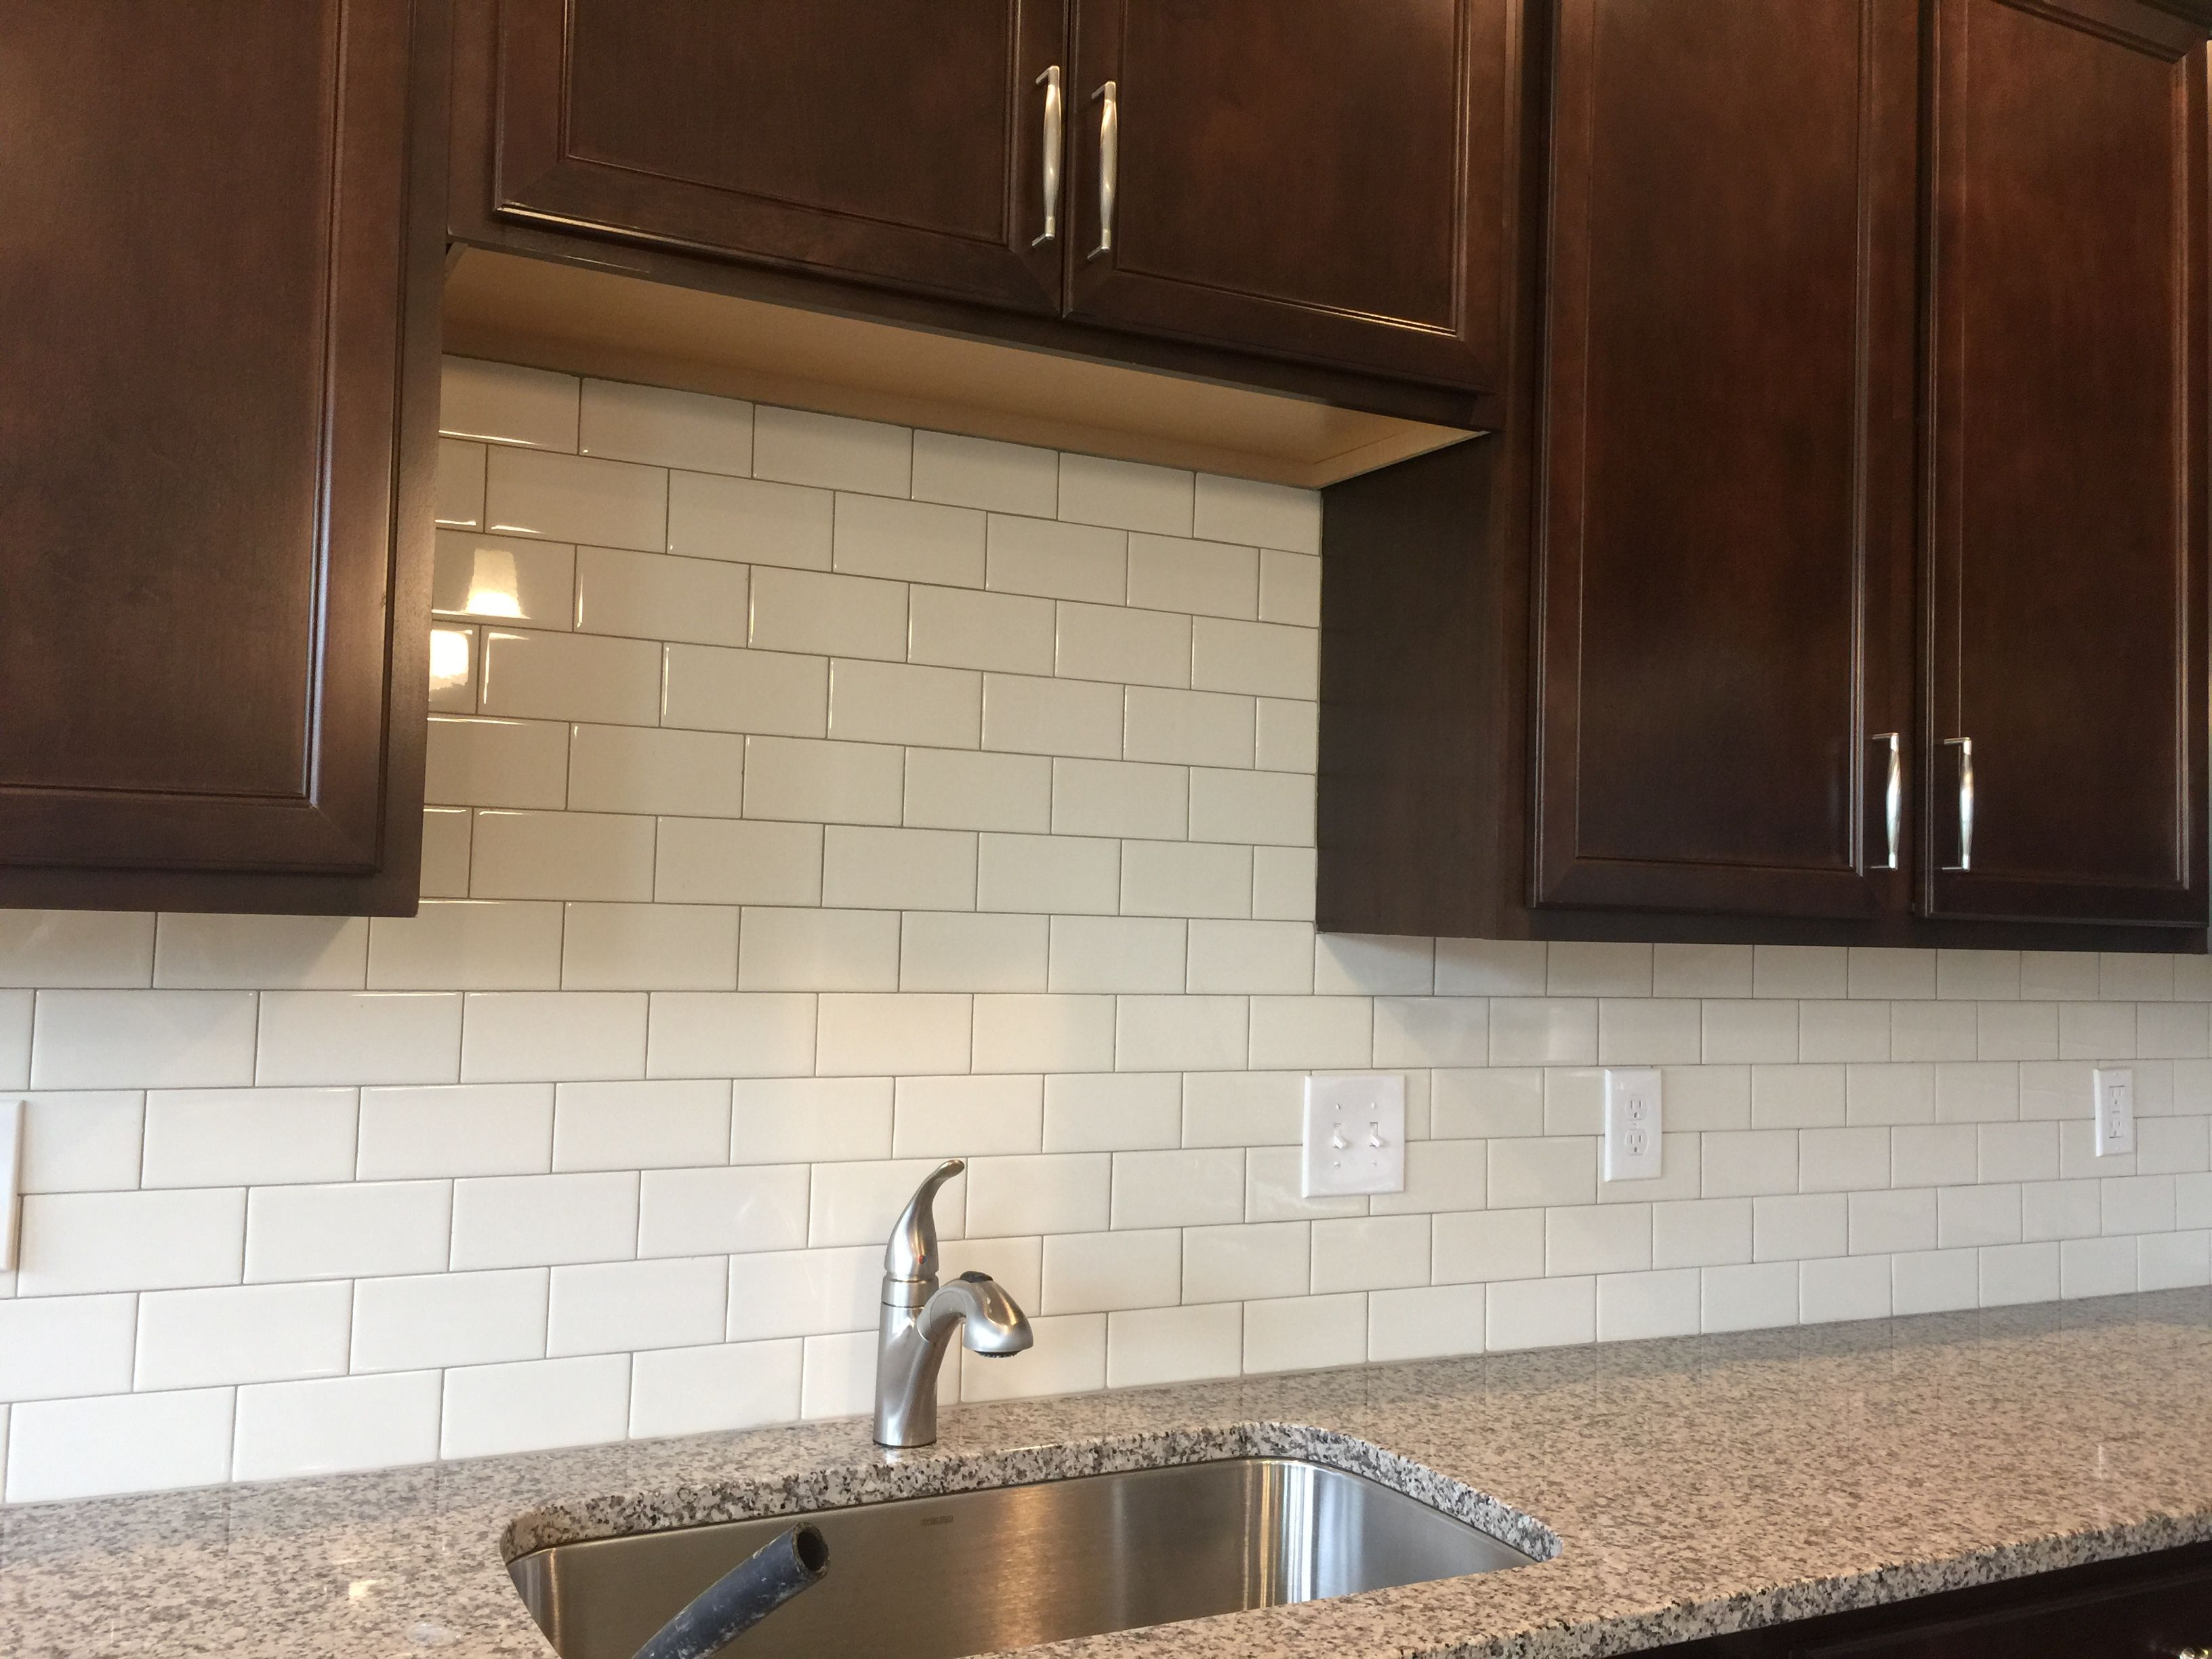 Rittenhouse, Biscuit, 3x6 Subway Tile, Brick Joint